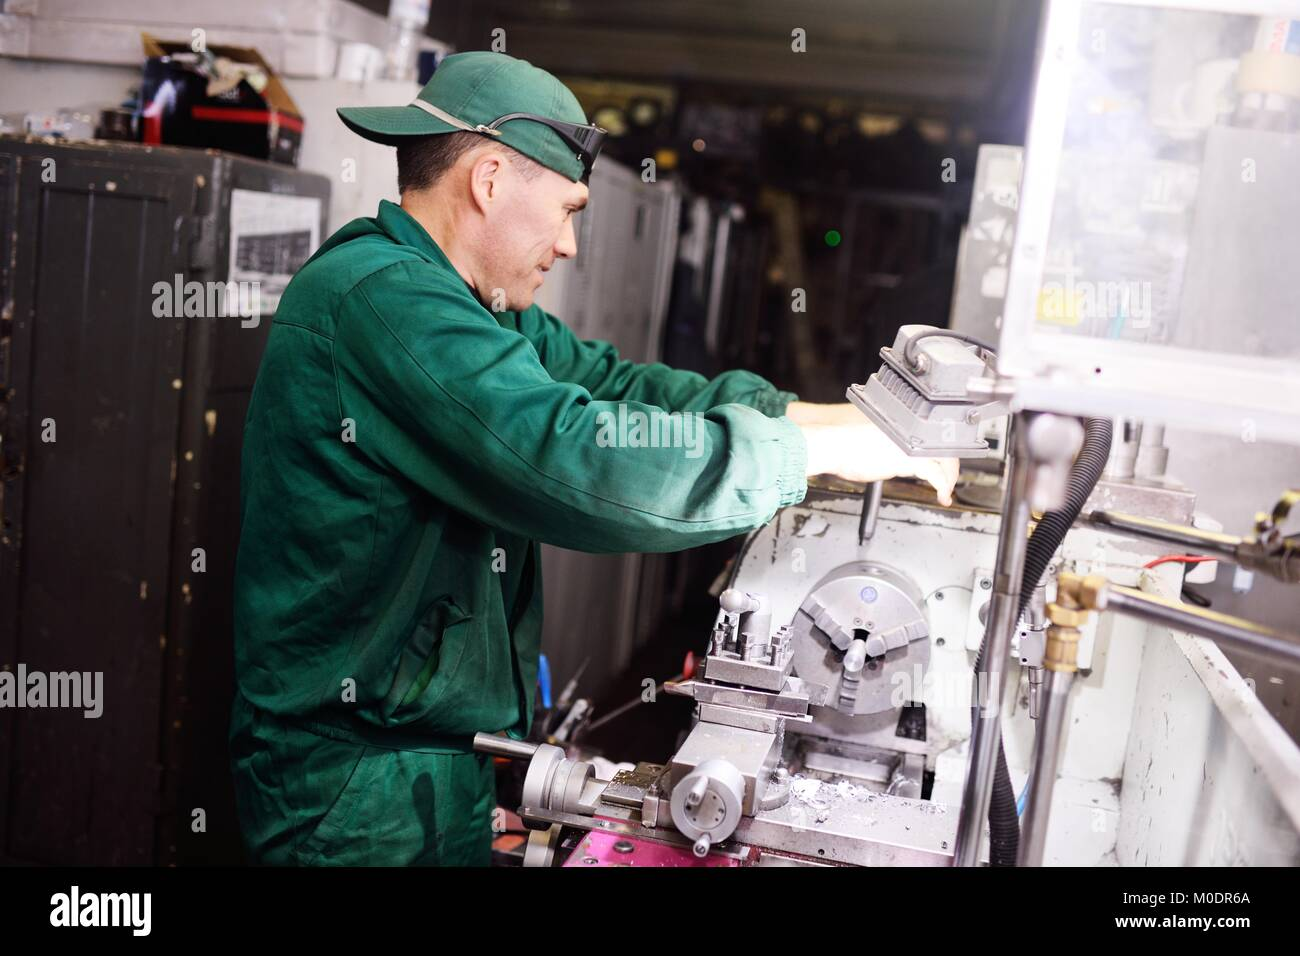 man working in working overalls - Stock Image